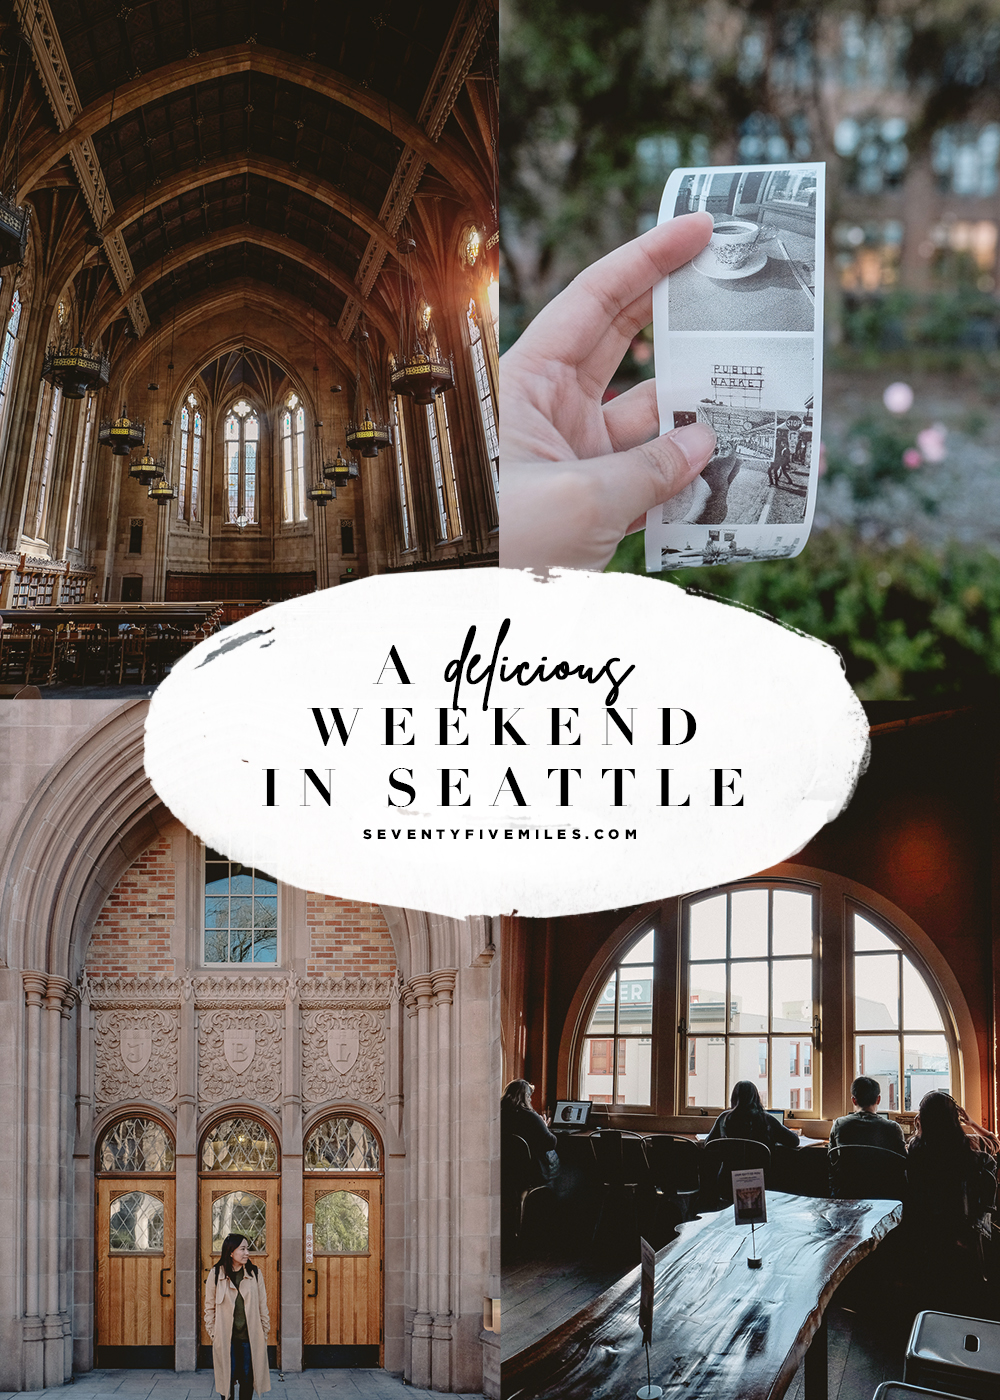 A Delicious Weekend Itinerary to Seattle